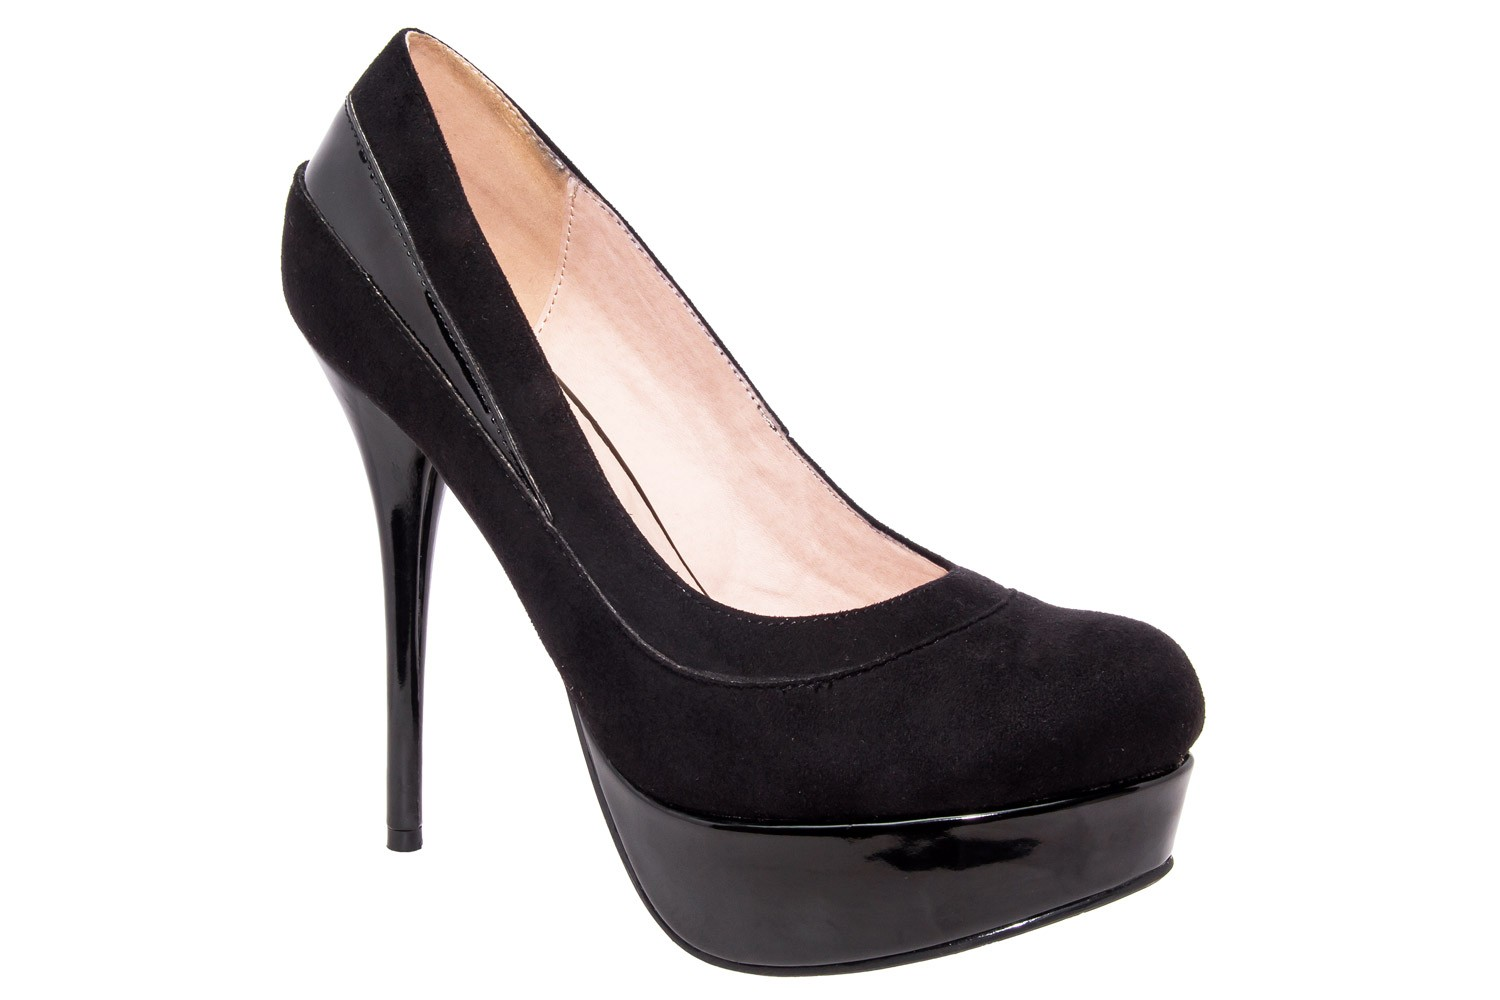 black platform party heels in small sizes by shoetastic